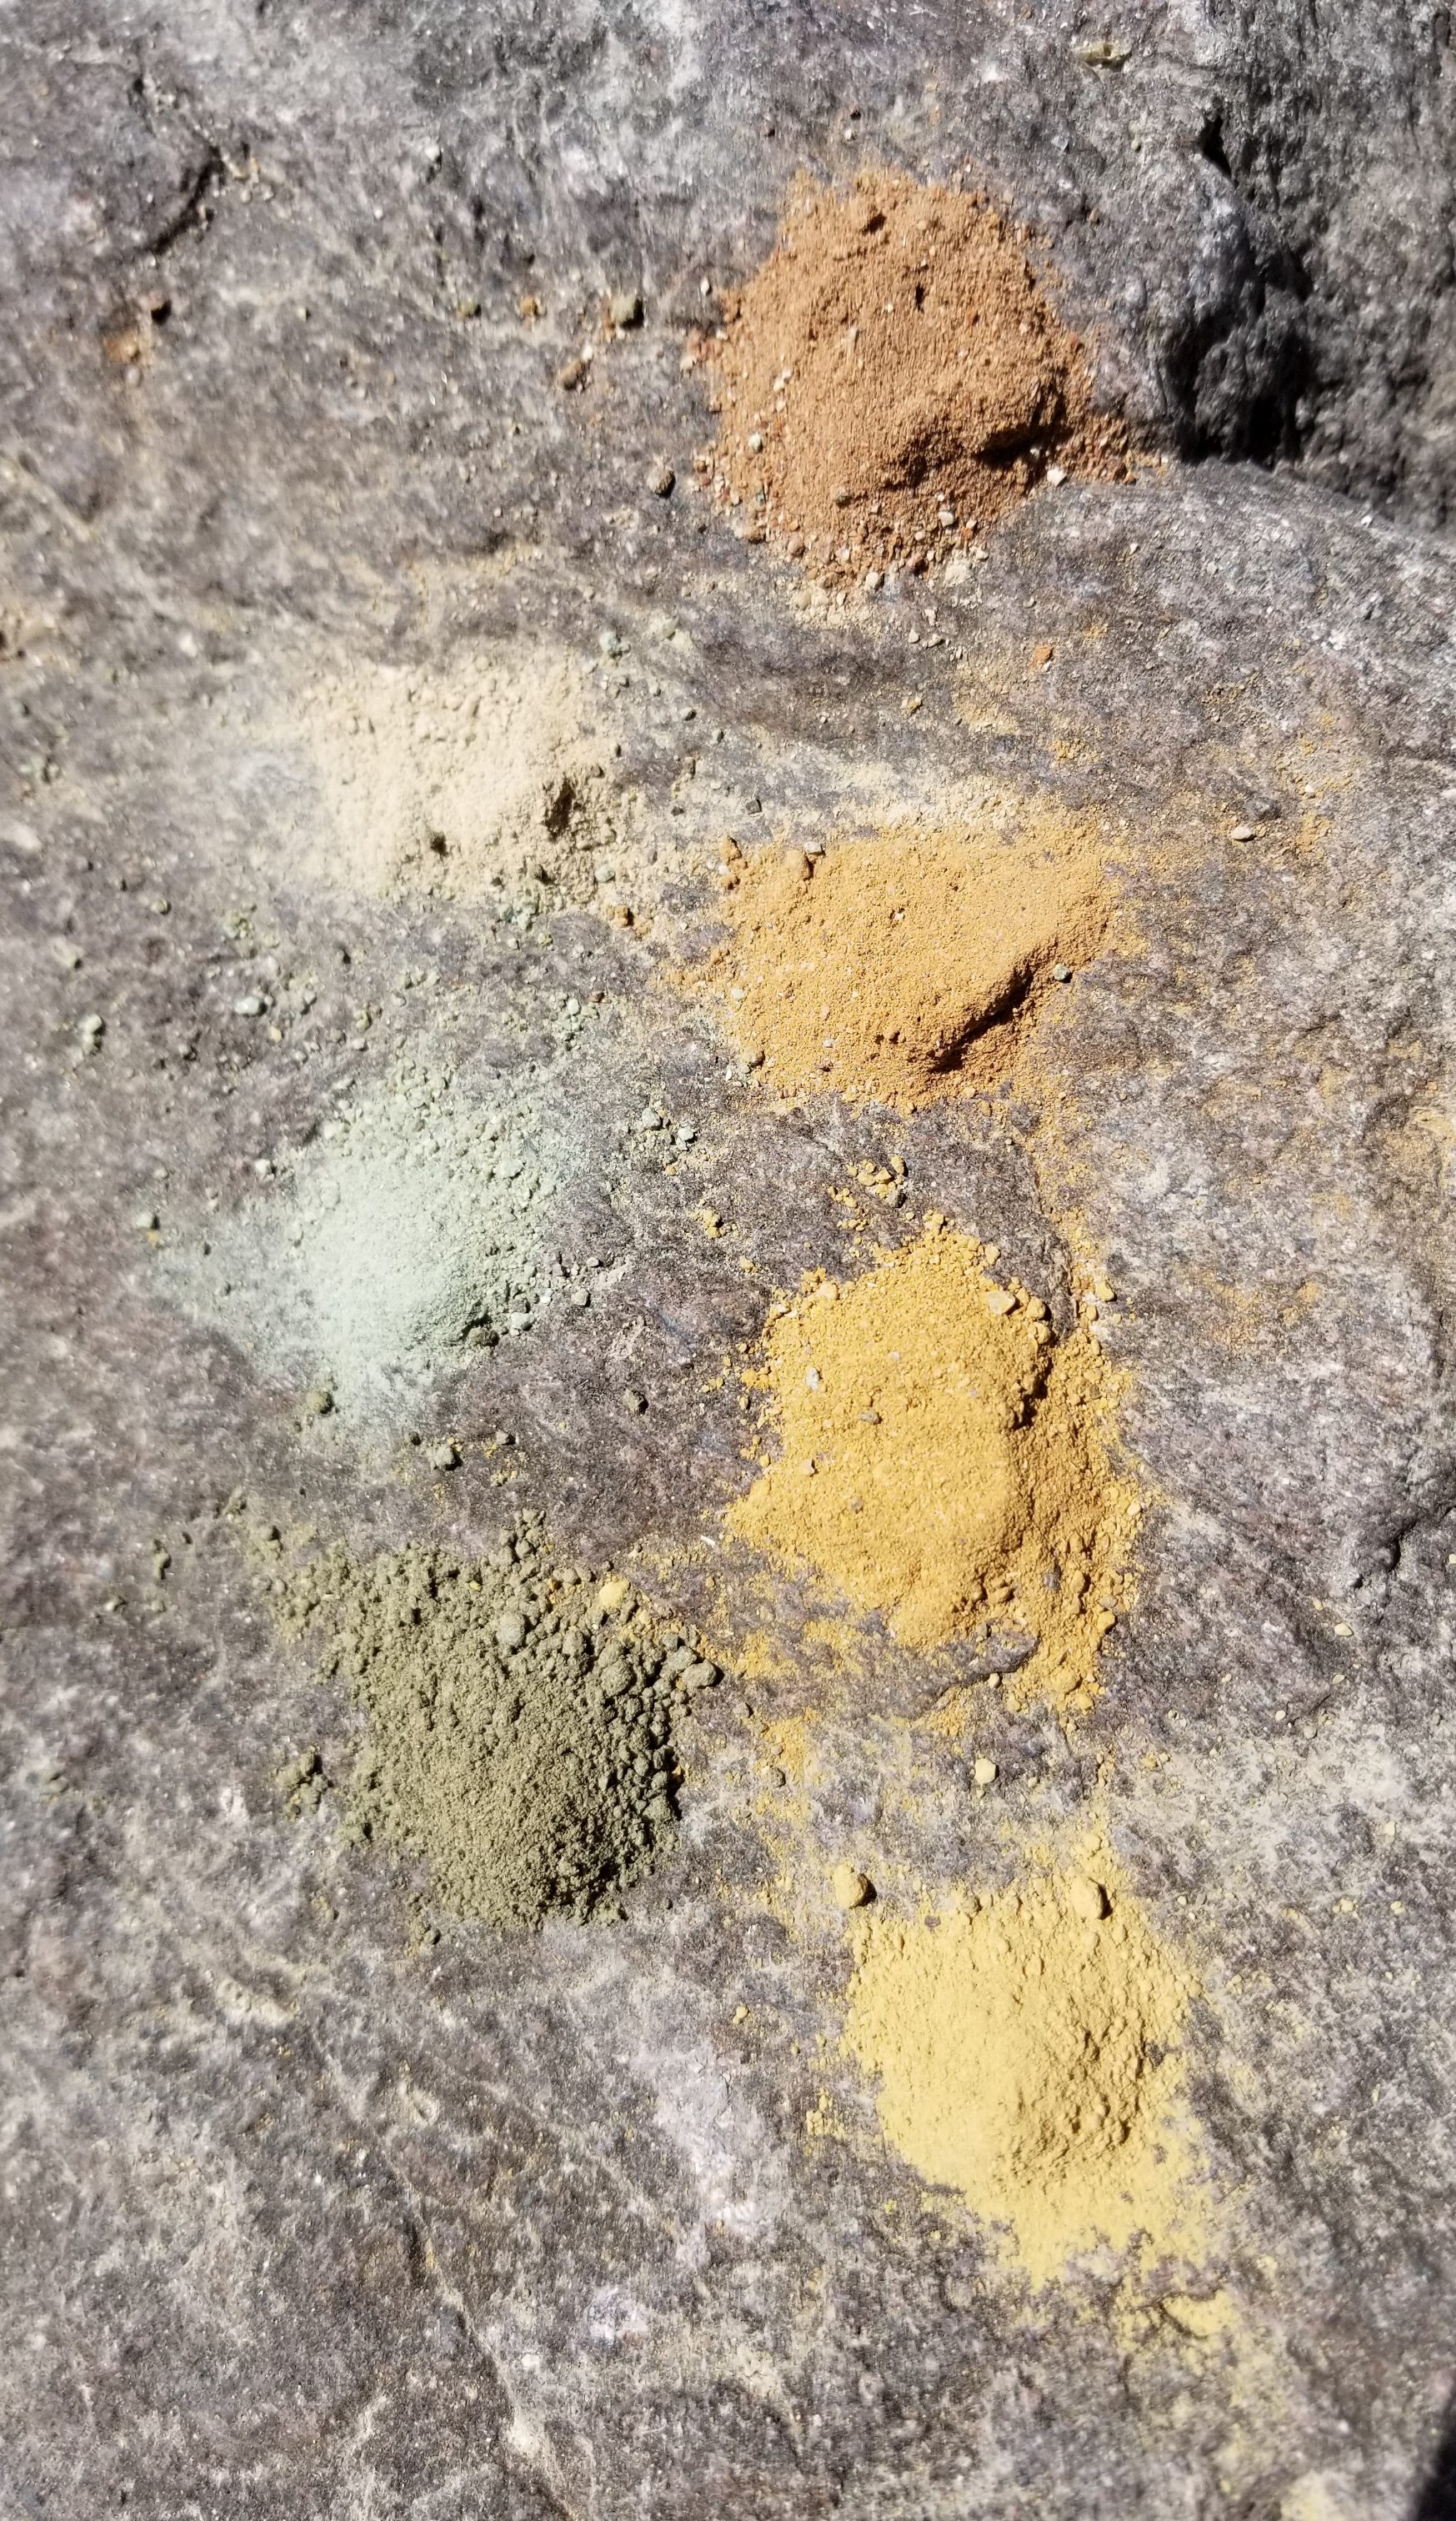 Mineral pigments I foraged and ground near the ancient sea bed of Paracas, Peru, June 2019.